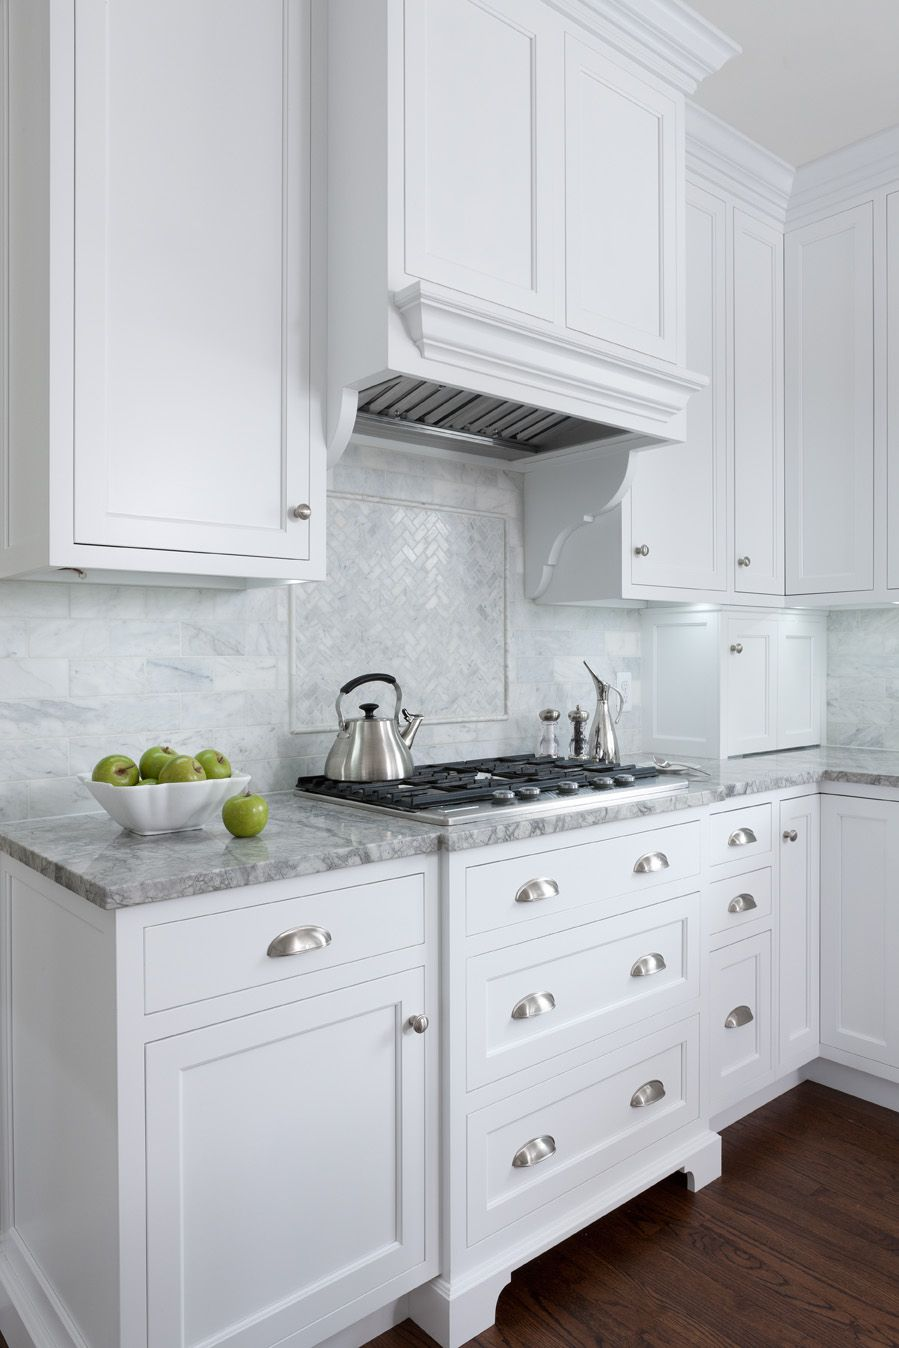 White Inset Cabinets Super White Counters Marble Backsplash Dark Wood Floors Mb Wilso White Shaker Kitchen Interior Design Kitchen Shaker Kitchen Cabinets